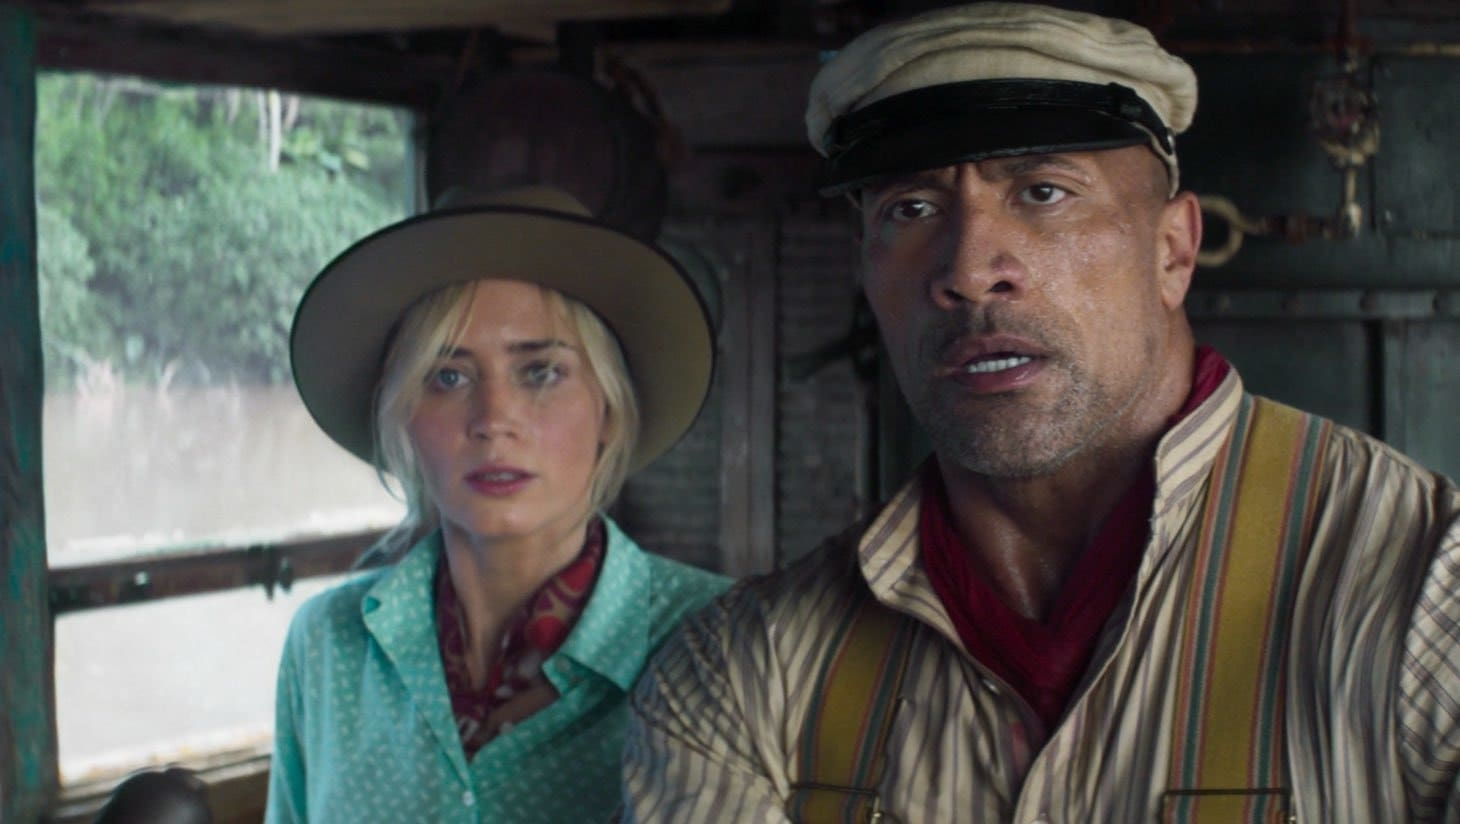 Dwayne Johnson e Emily Blunt interpretano i protagonisti di Jungle Cruise